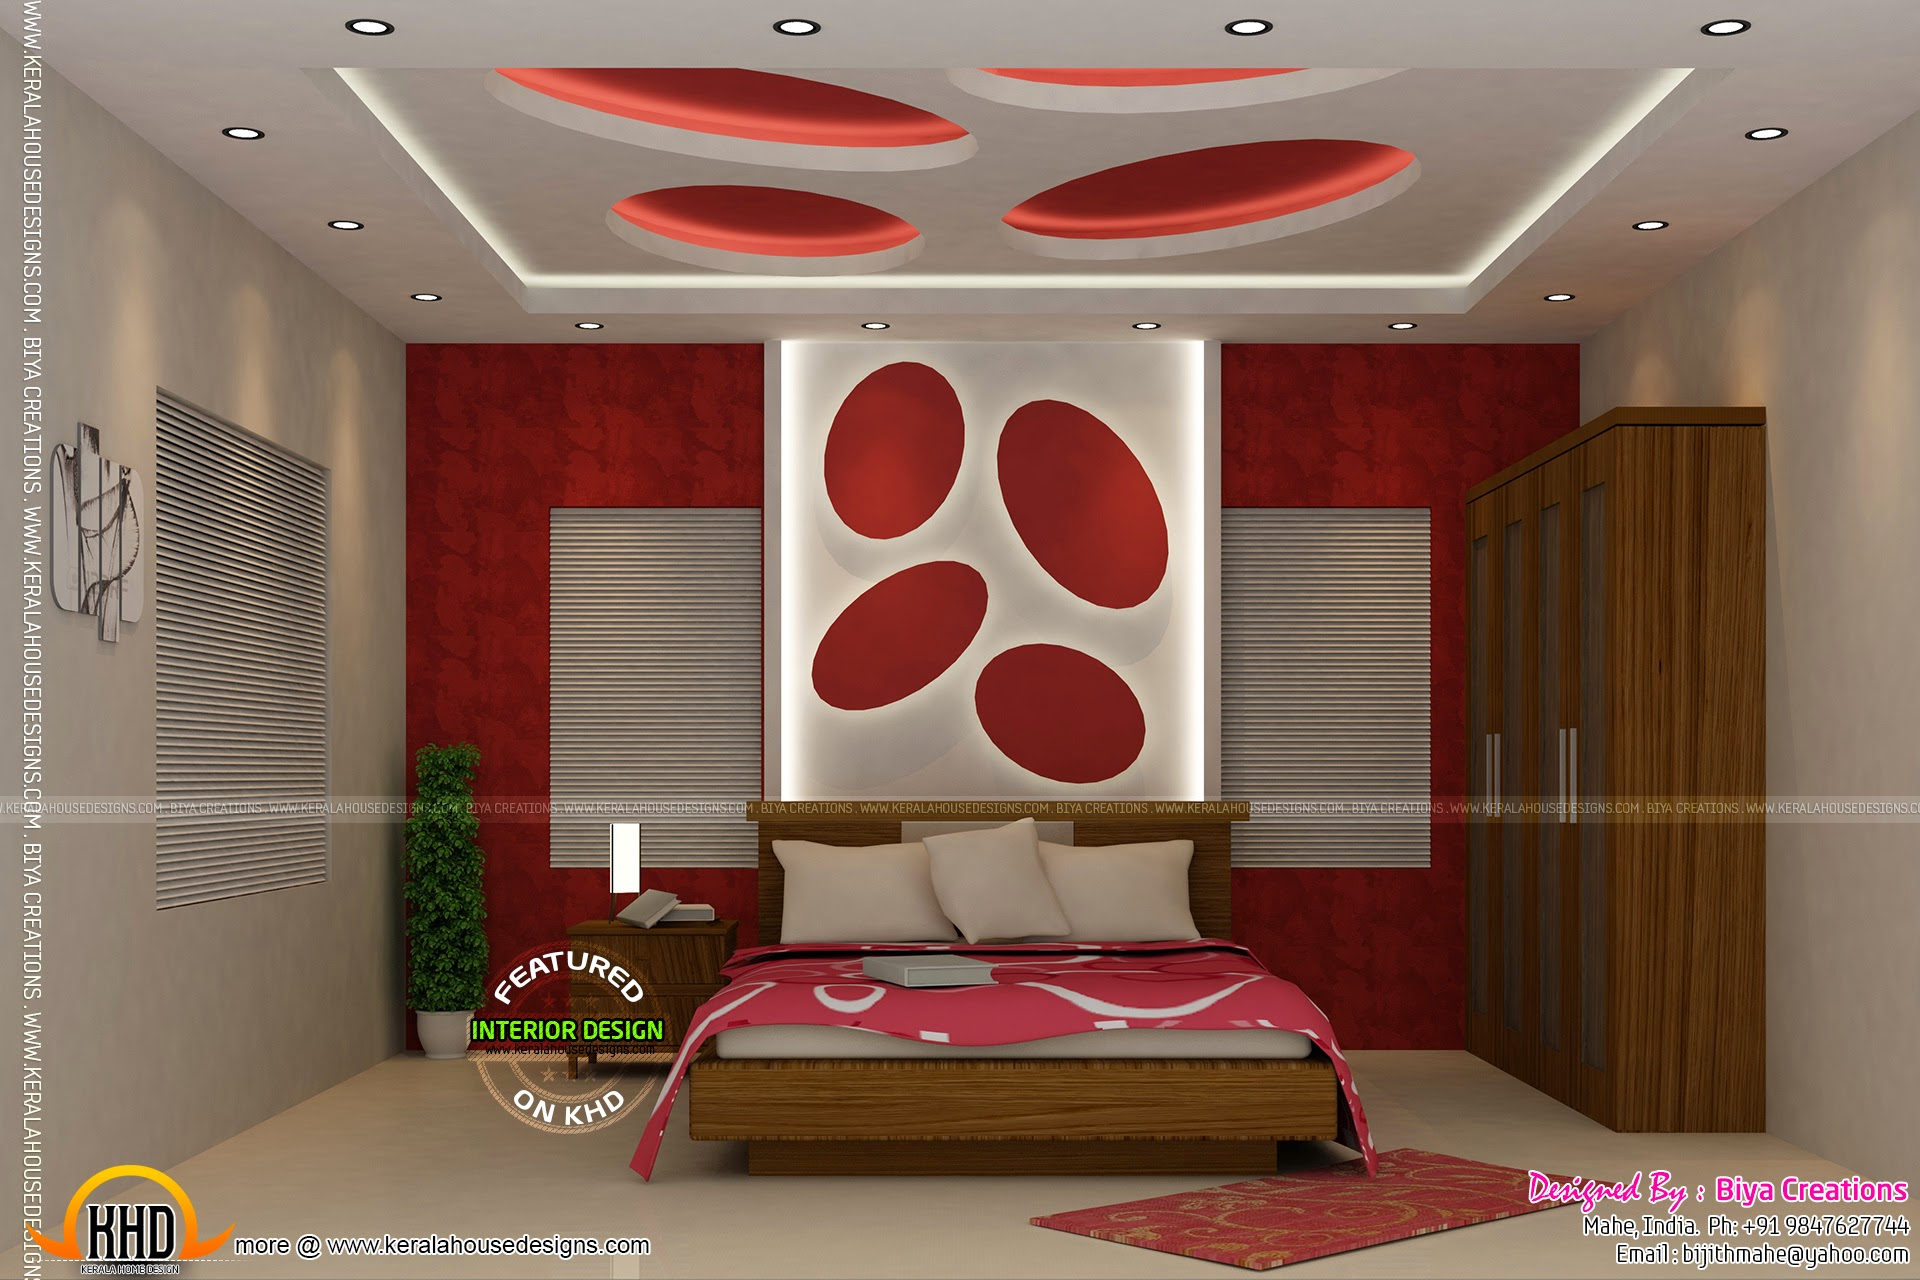 Interiors designs in mahe india kerala home design and for Interior designs in india